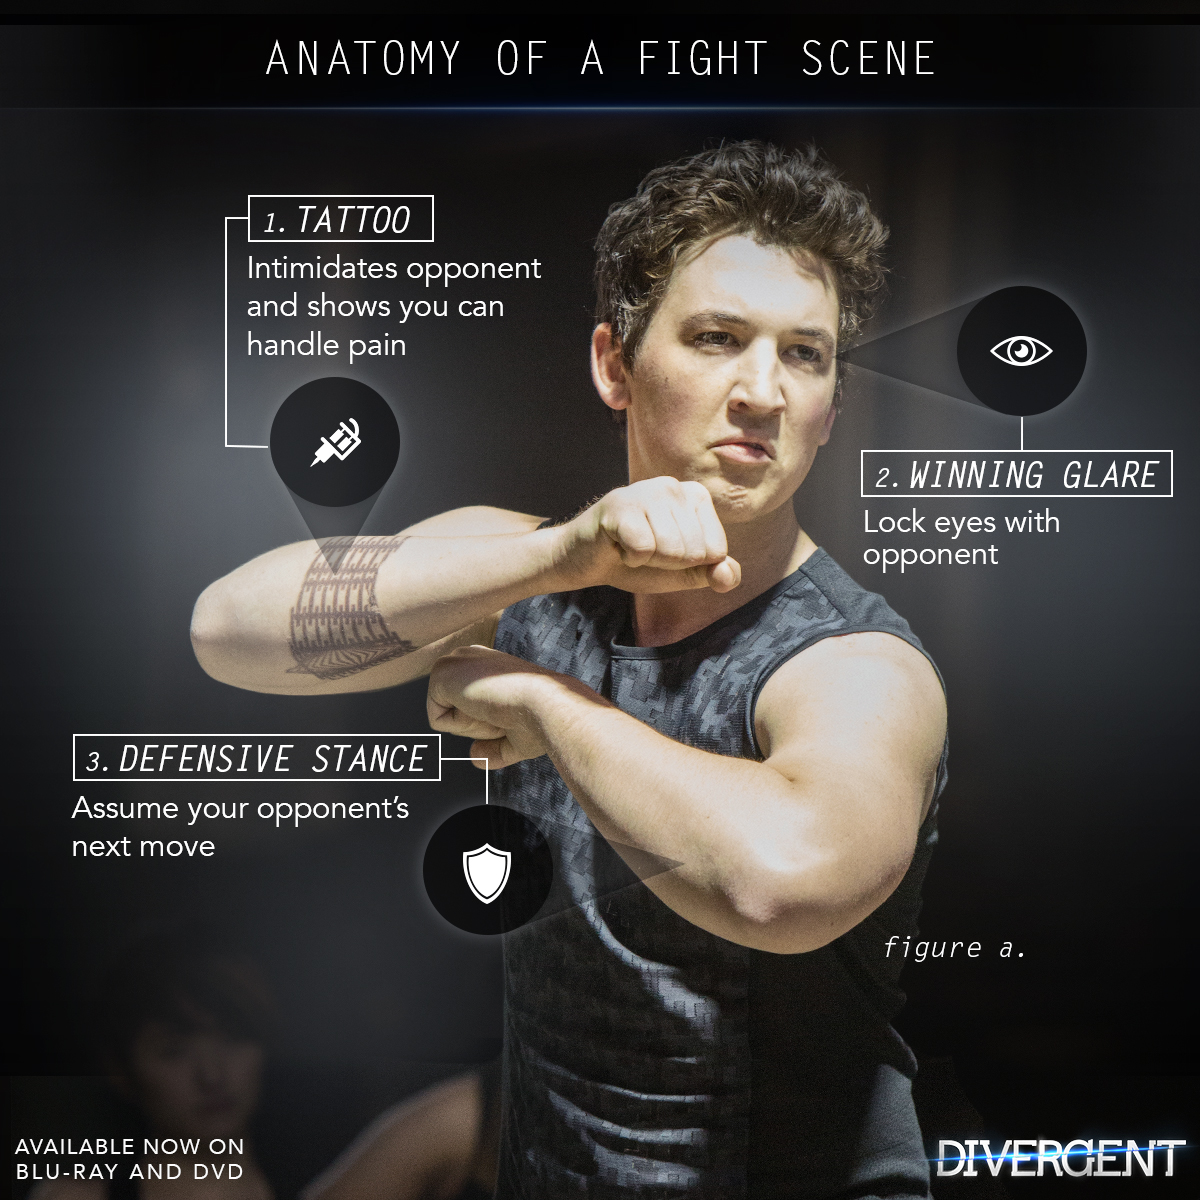 divergent movie peter - photo #10